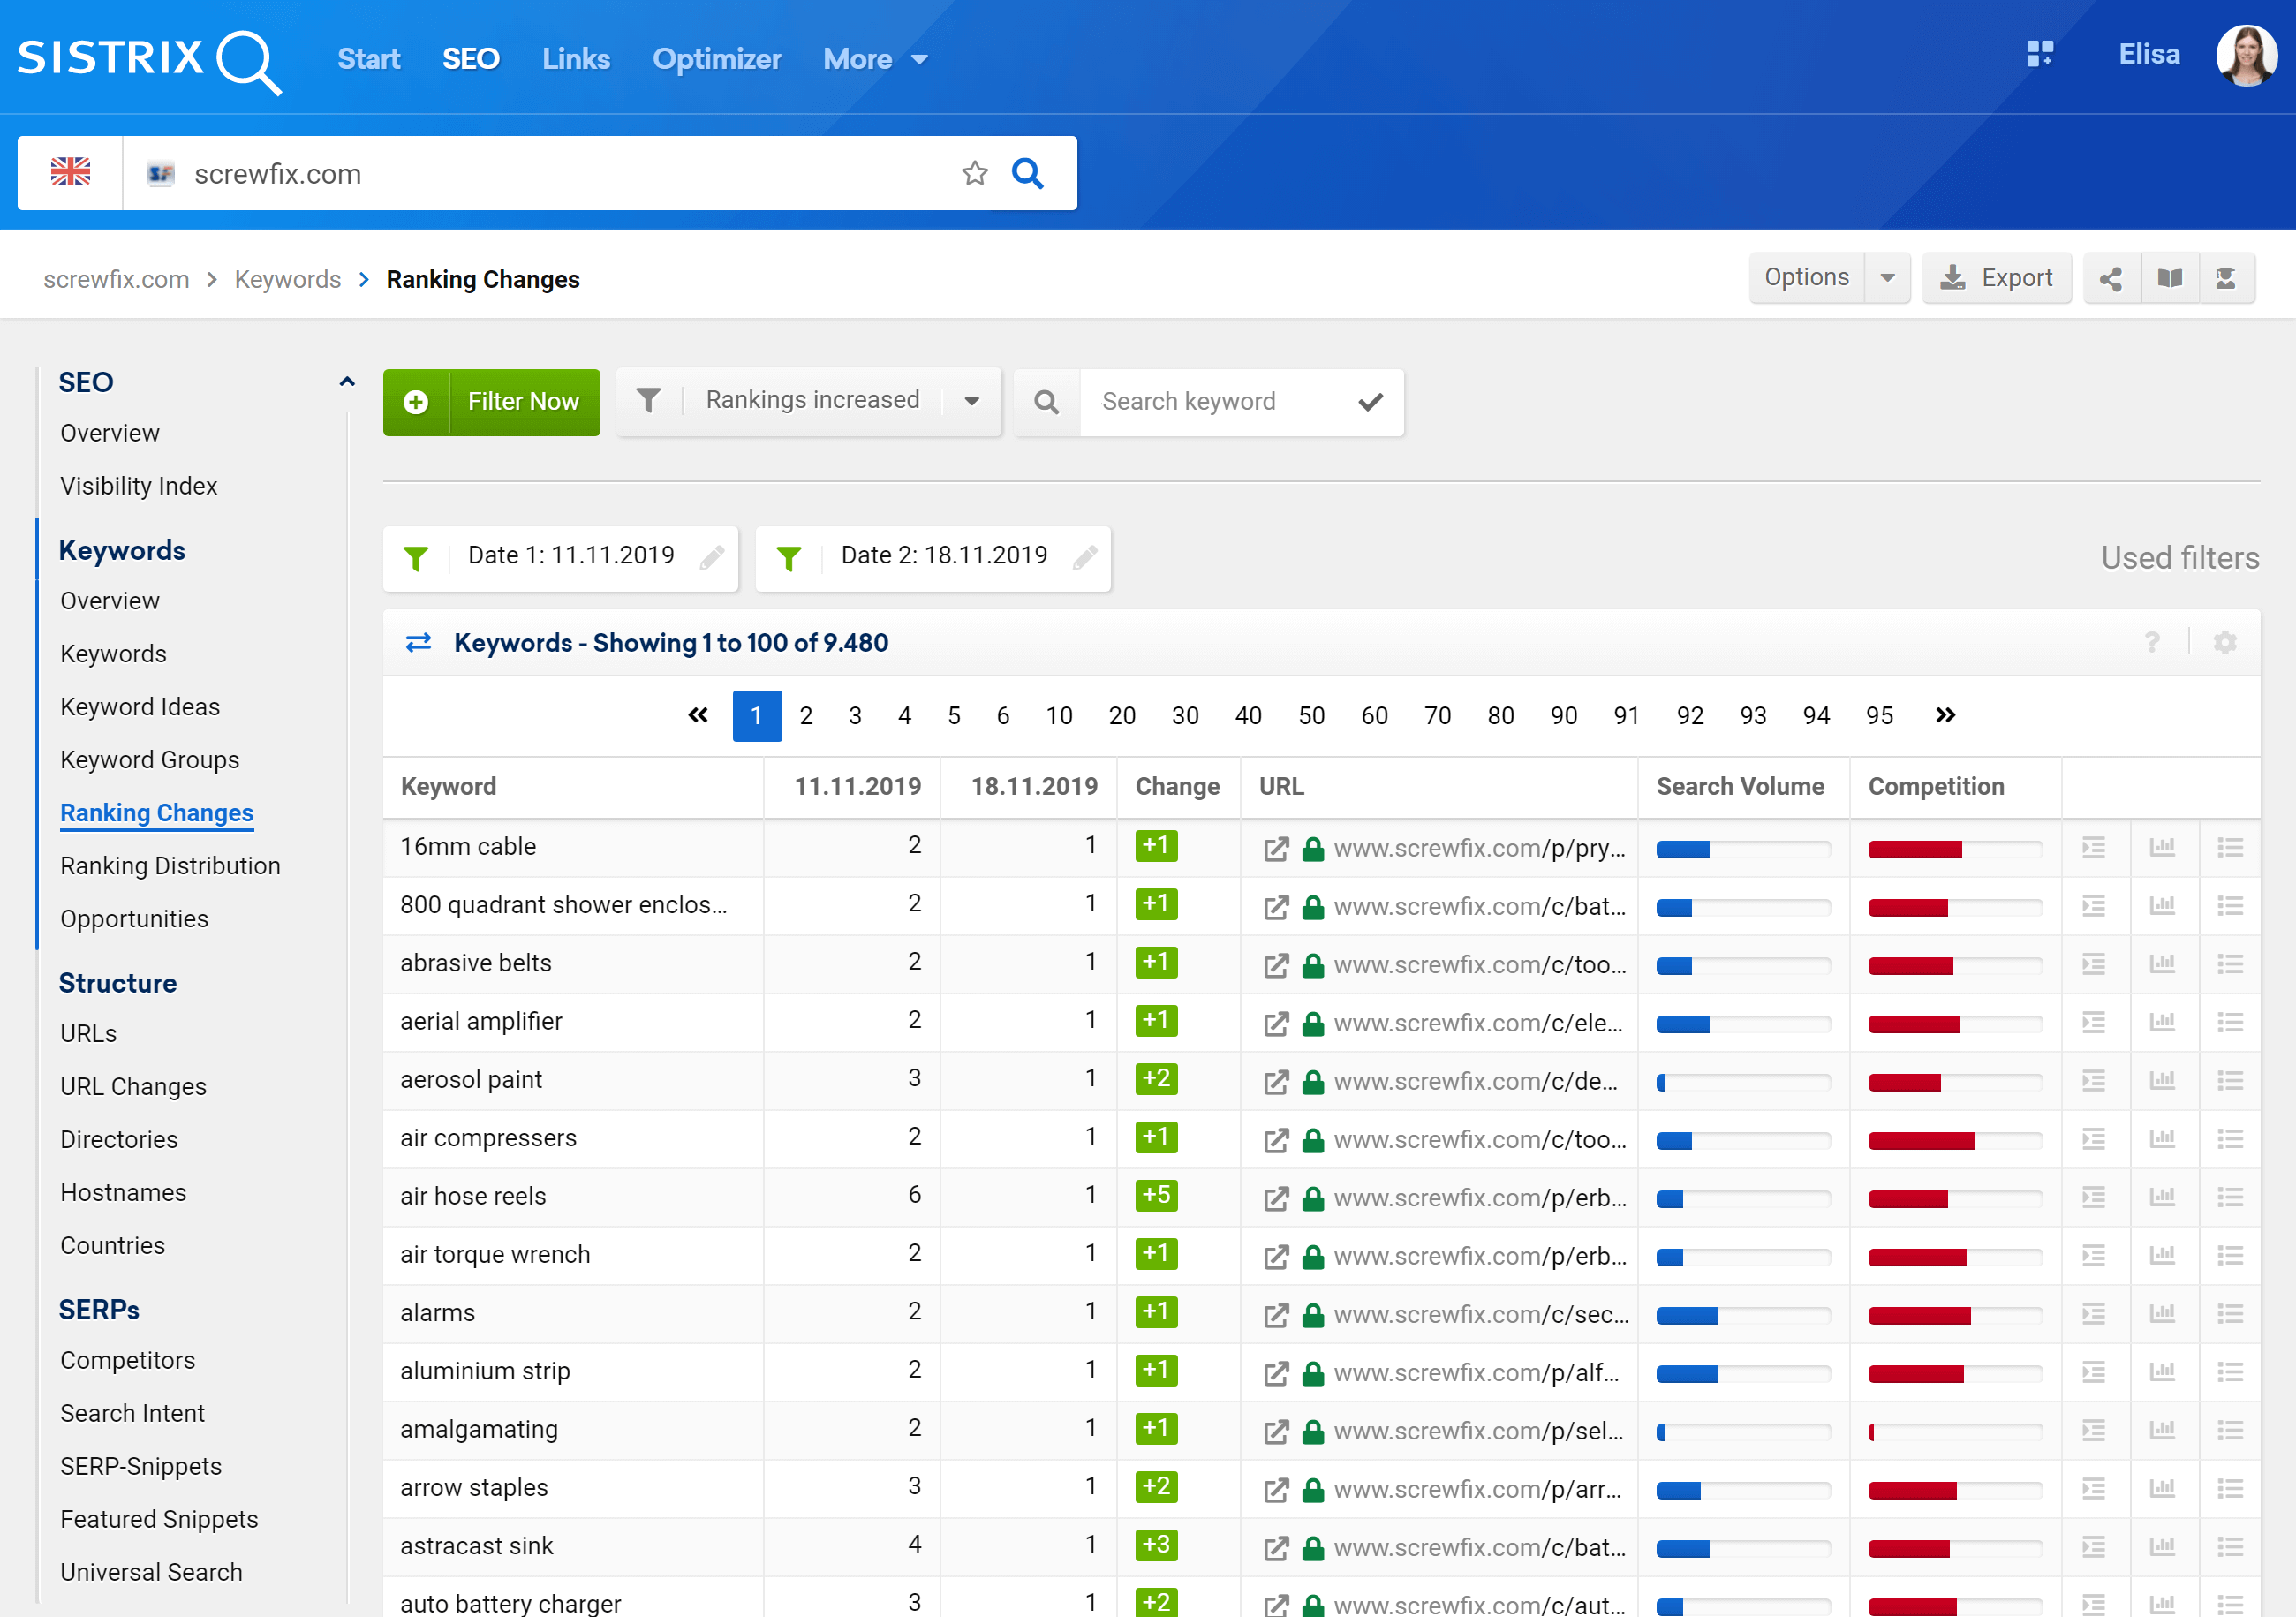 Ranking changes of screwfix.com in the SISTRIX Toolbox